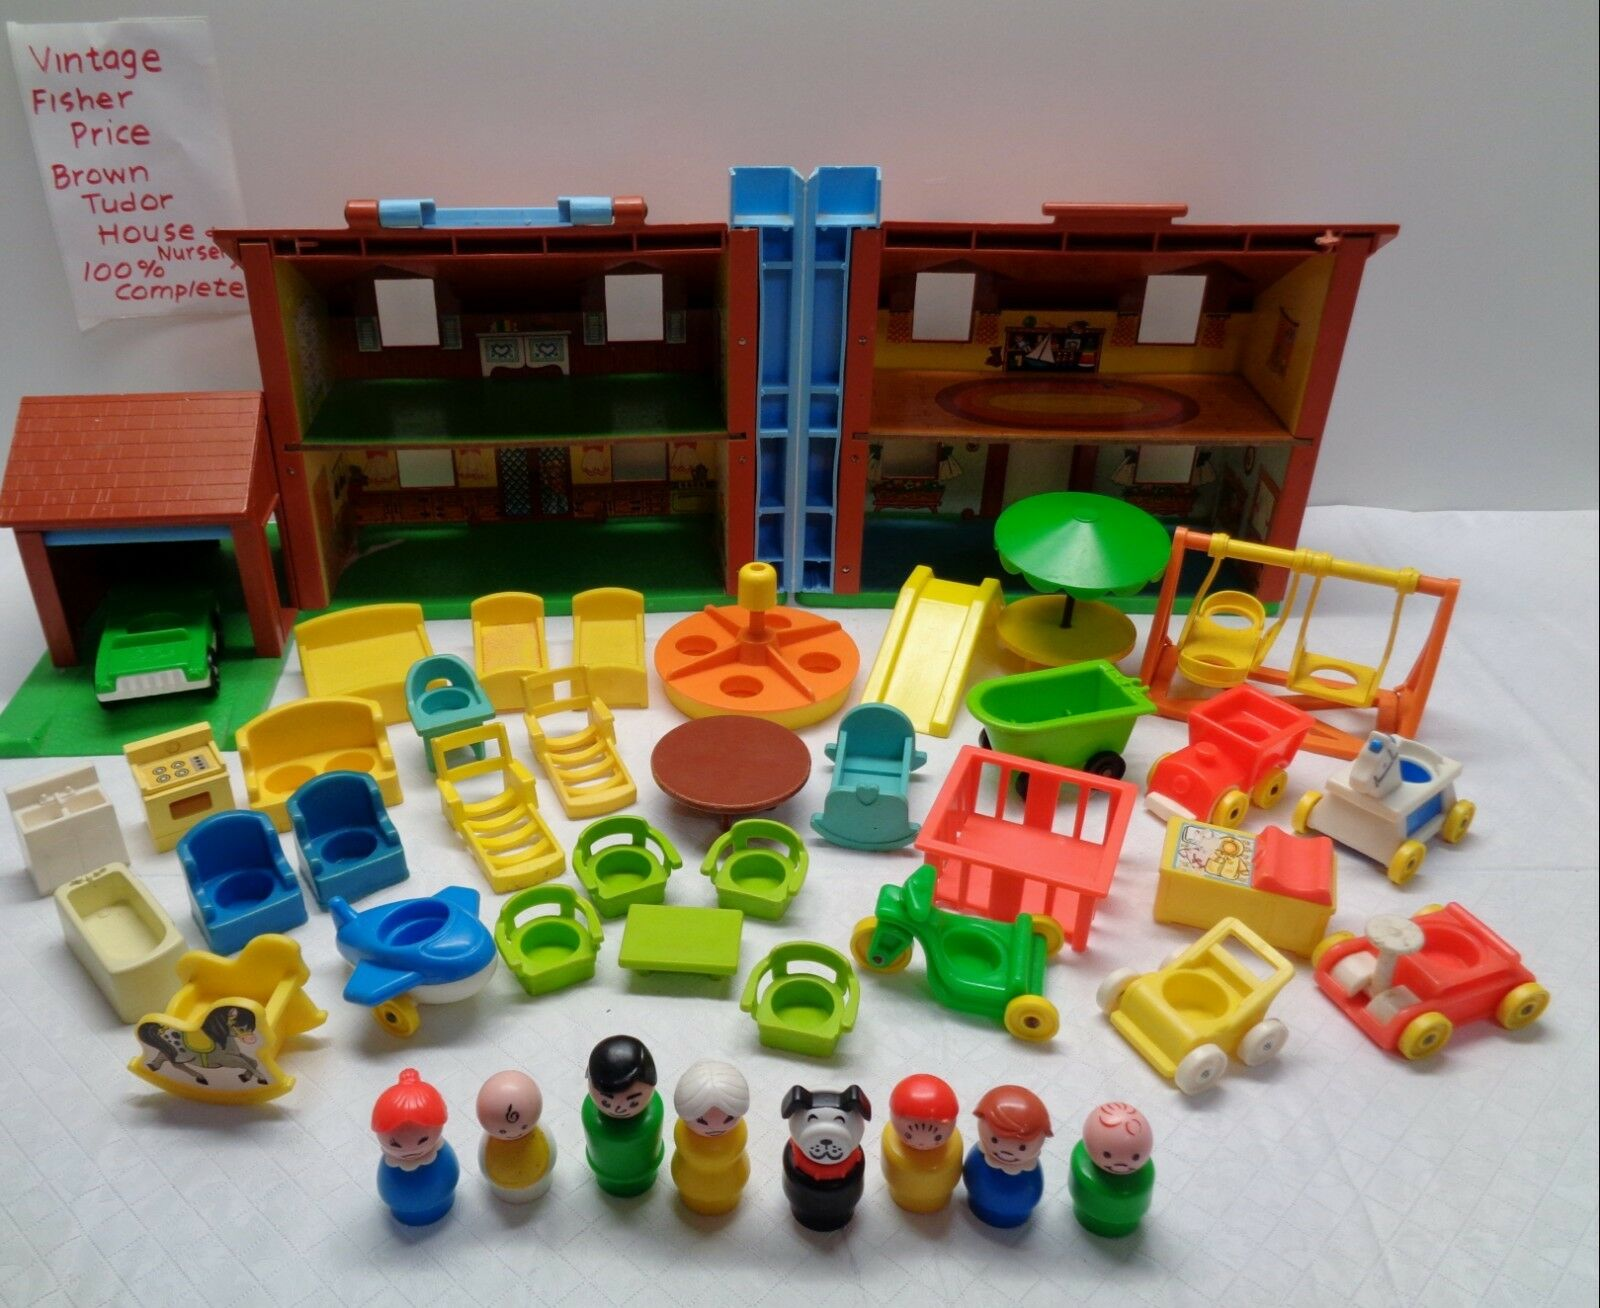 VINTAGE Fisher Fisher Fisher Price Little People PLAY FAMILY TUDOR HOUSE NURSERY 100% COMPLETE ae1357